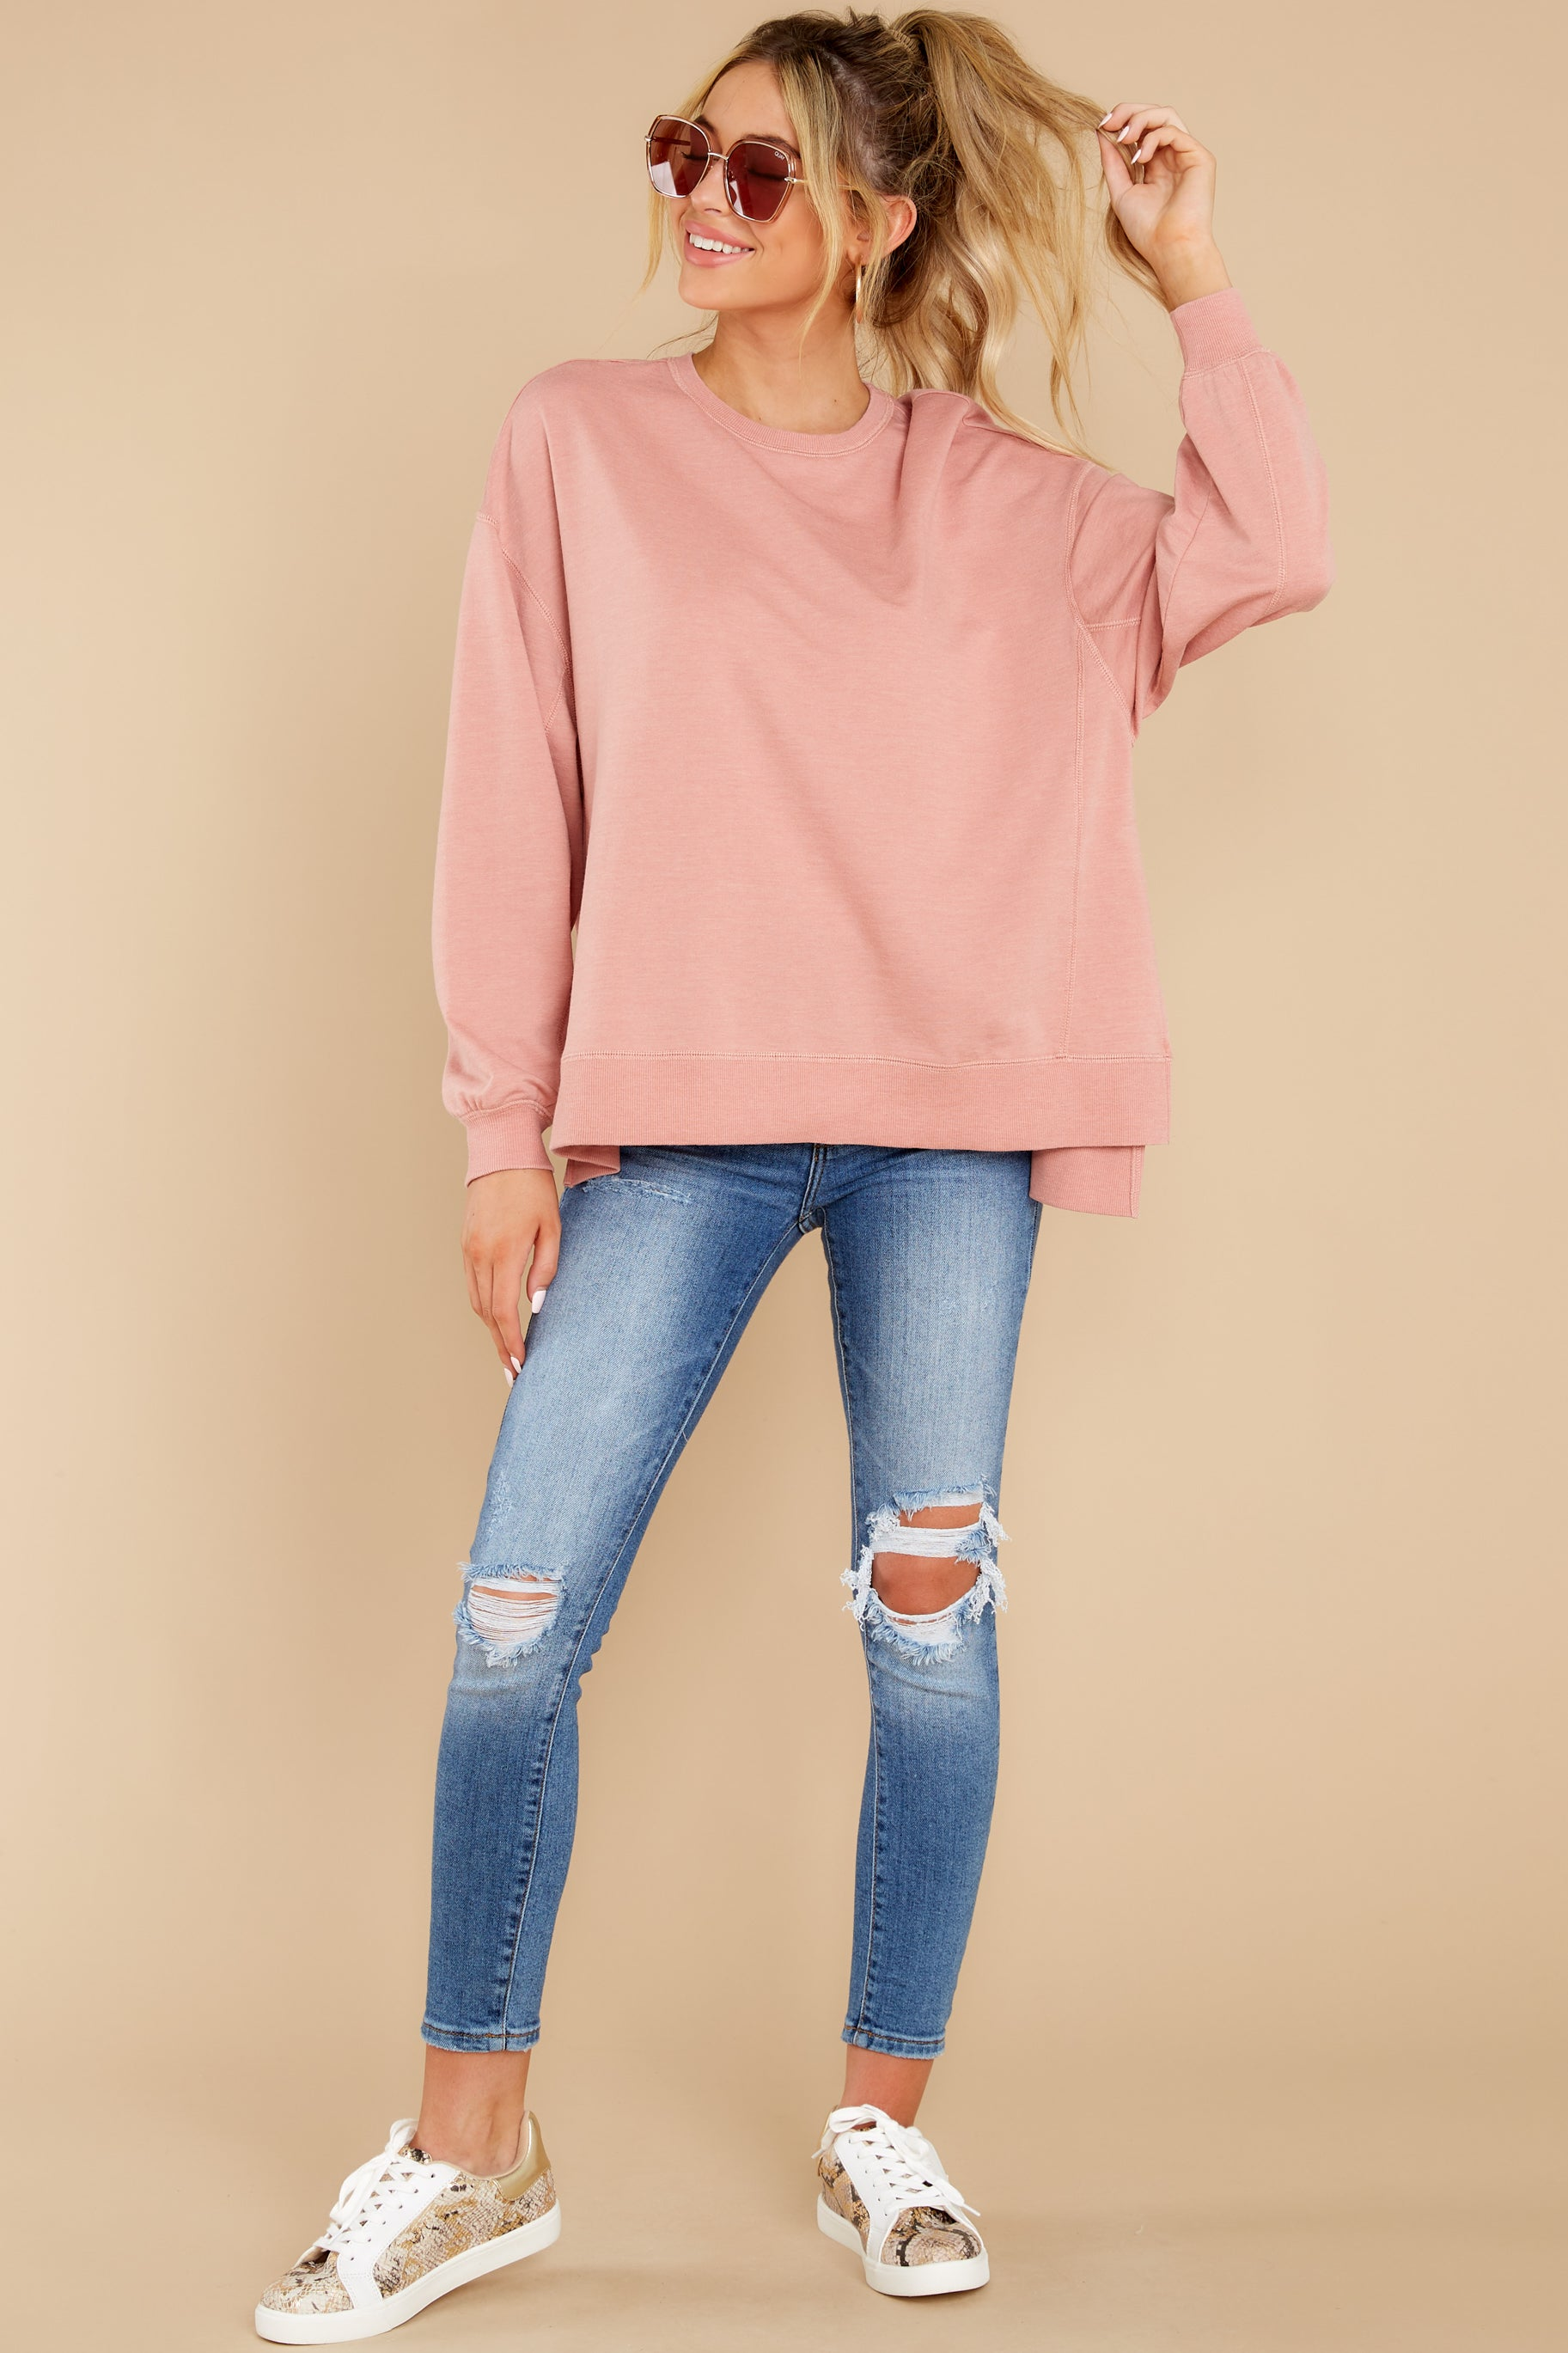 Z Supply Pink Top Oversized French Terry Pullover Tops 52 00